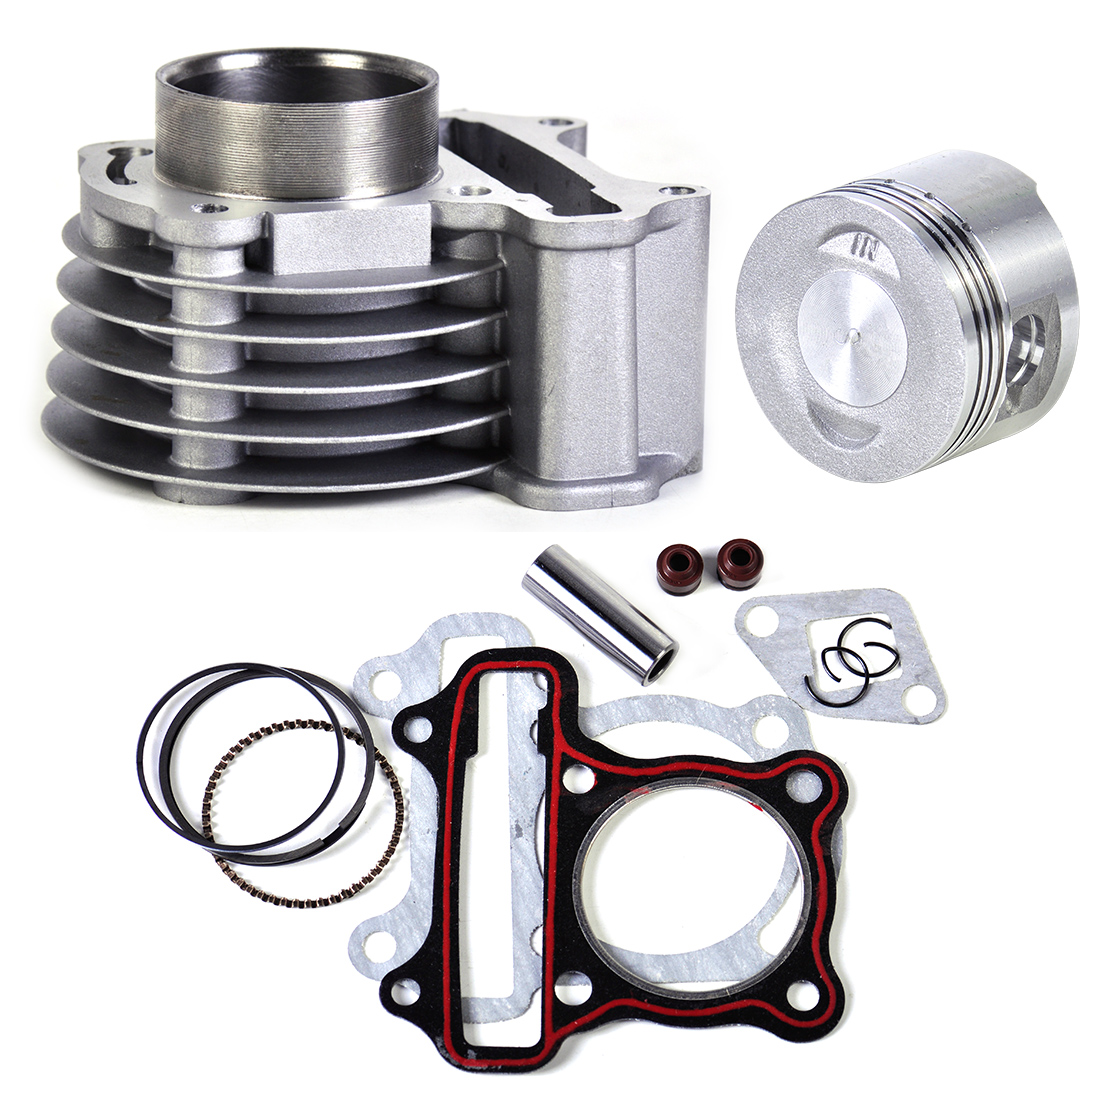 New Set 47mm Big Bore Kit Cylinder Piston Rings fit for GY6 50cc to 80cc 4 Stroke Scooter Moped ATV with 139QMB 139QMA engine